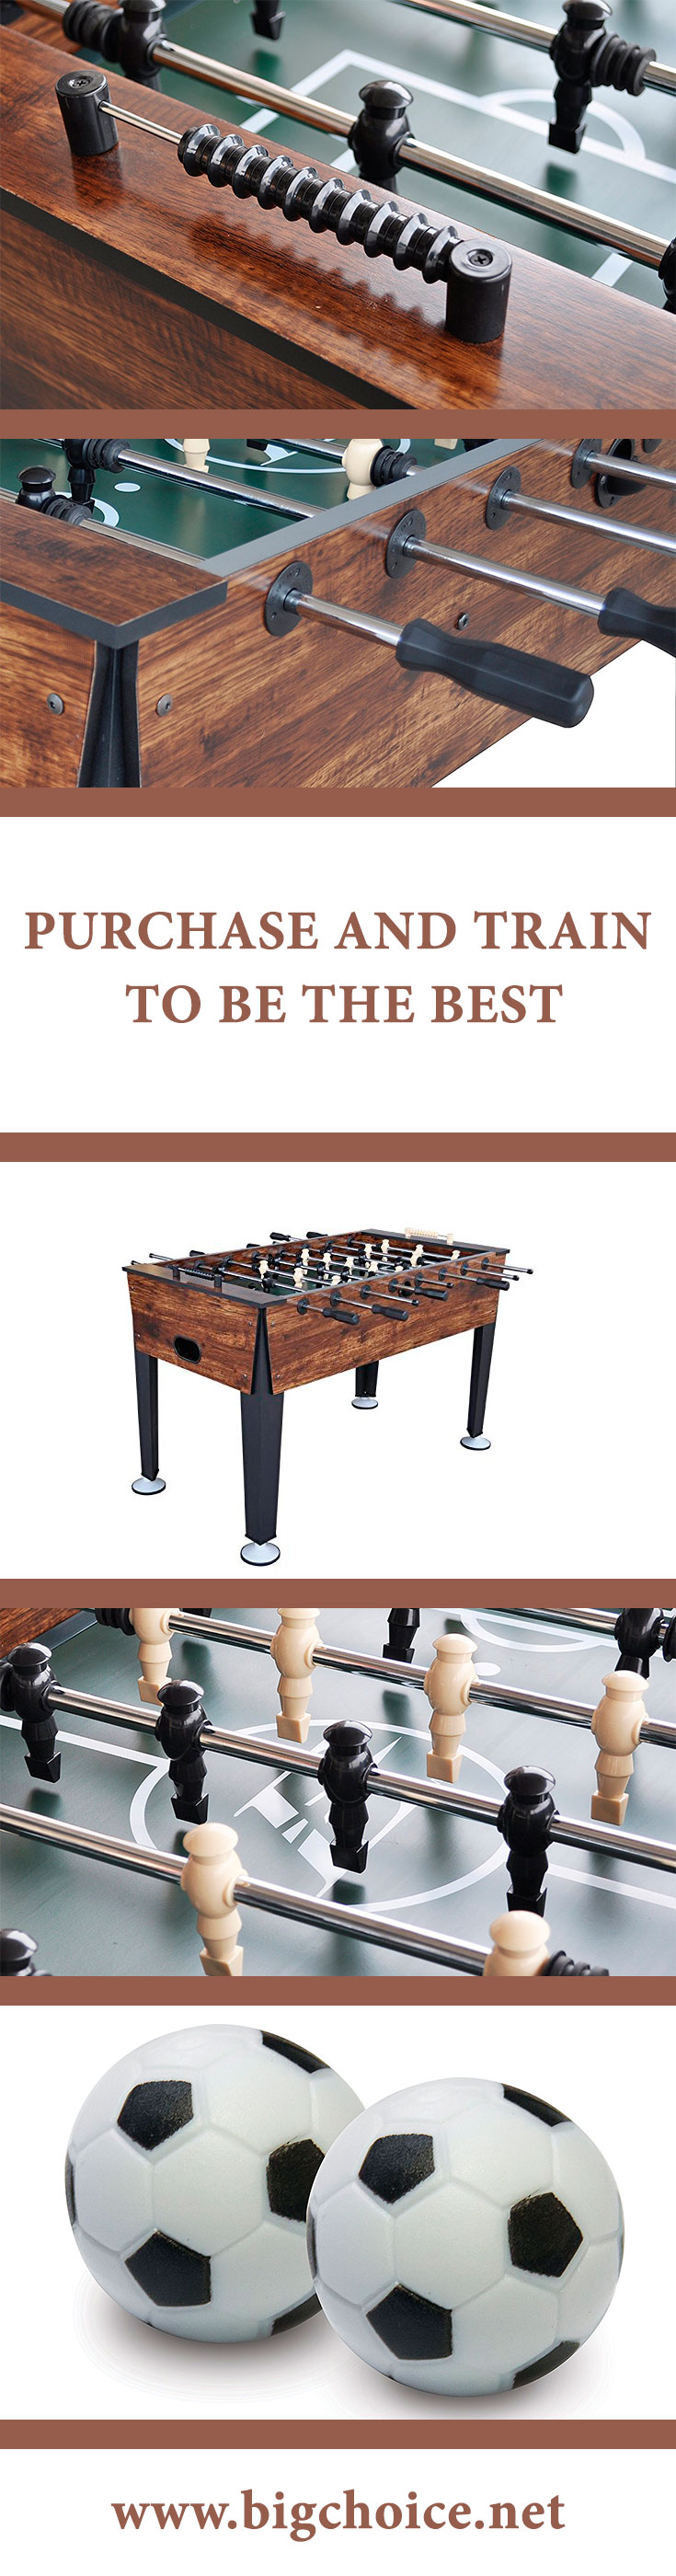 How To Start Foosball Table? Buy Foosball Table By EastPoint Sports To Play  Your Favorite